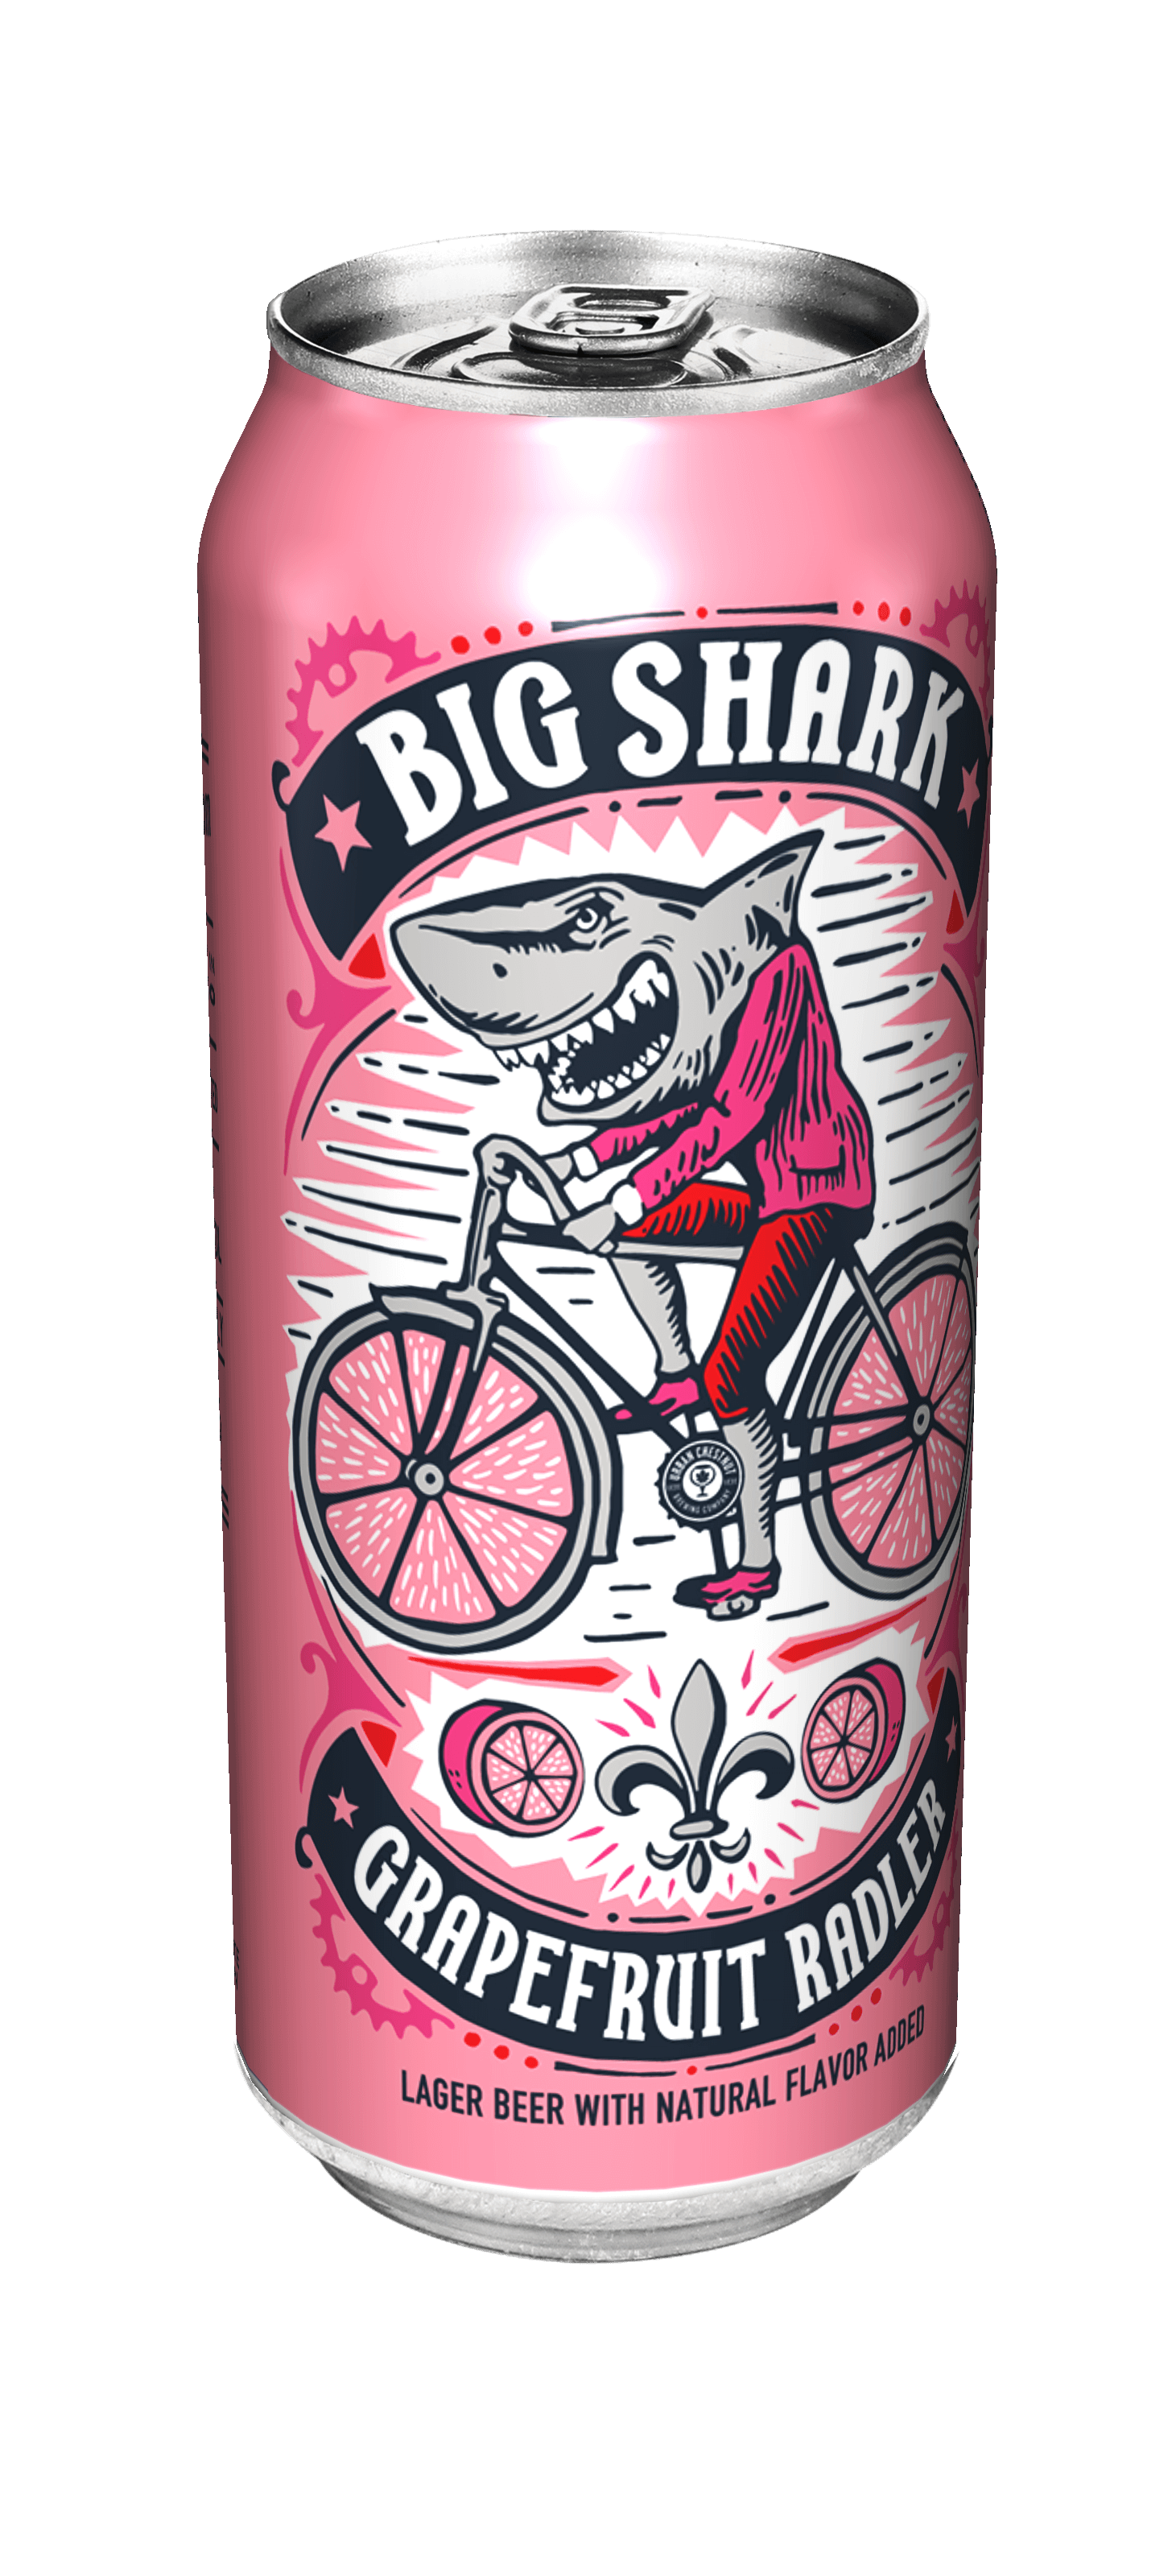 Big Shark Grapefruit Radler